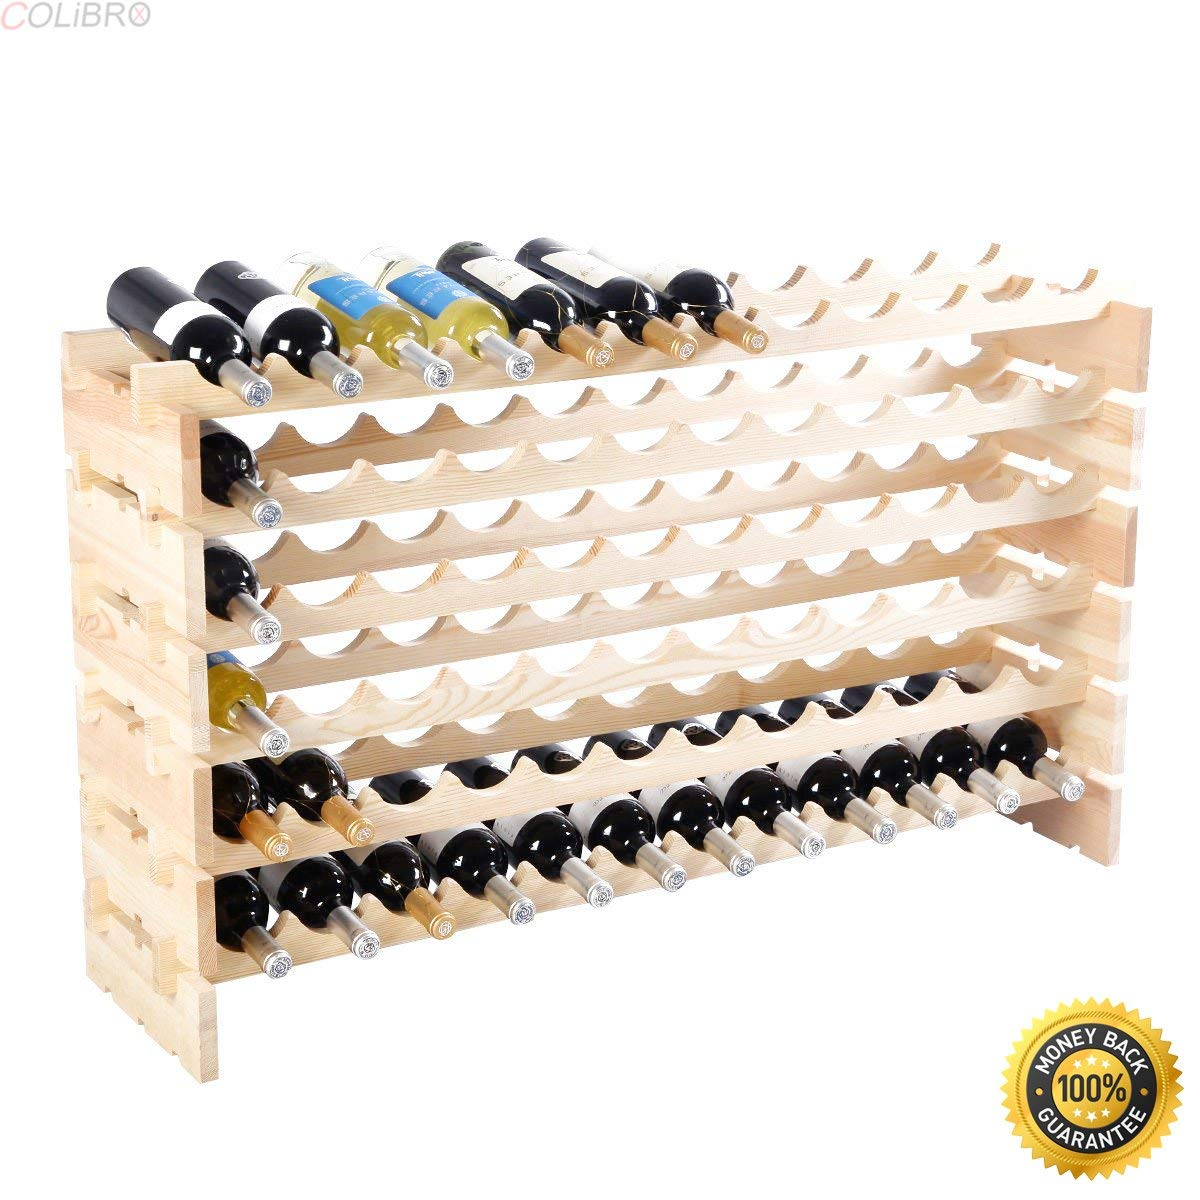 COLIBROX--New 72 Bottle Wood Wine Rack Stackable Storage 6 Tier Storage Display Shelves,wooden wine shelf,wine rack plans fine woodworking,wood wine rack,wine rack